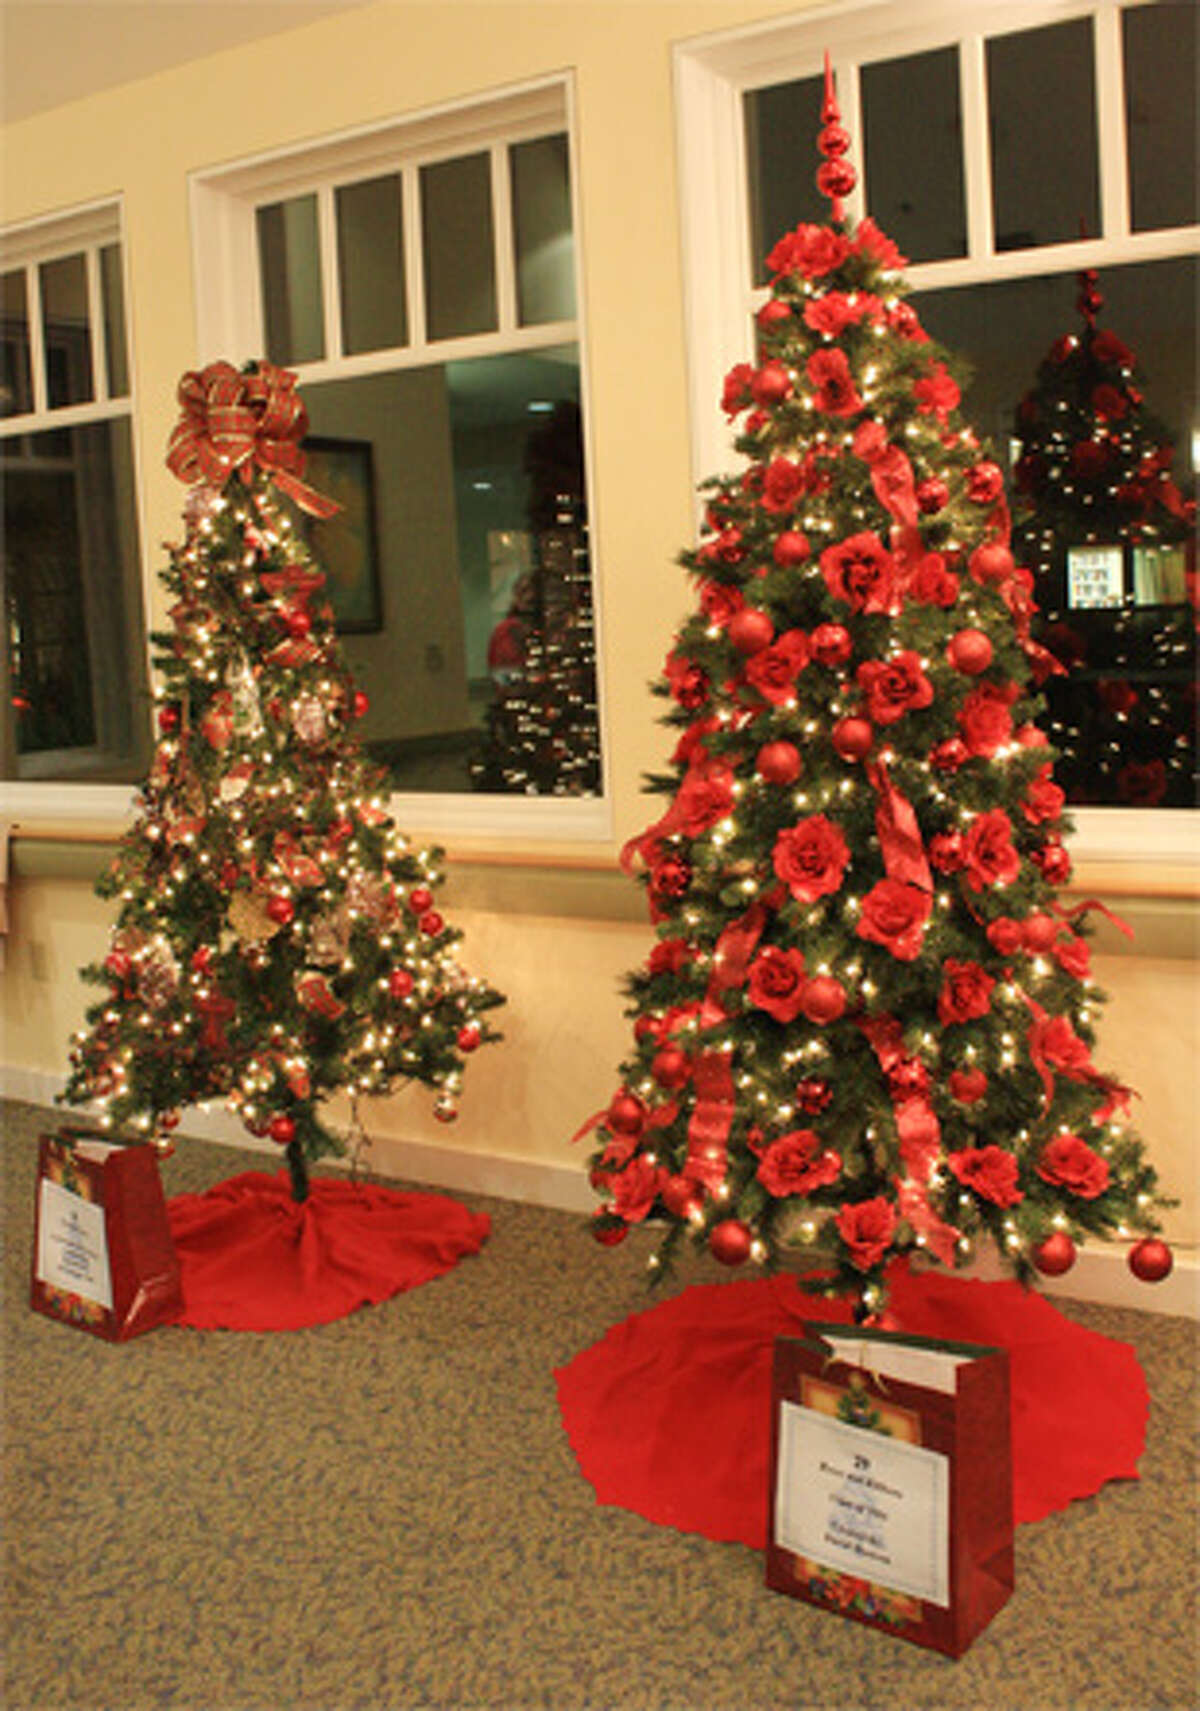 Decorated holiday trees from a past Festival of Trees at Wesley Village in Shelton.